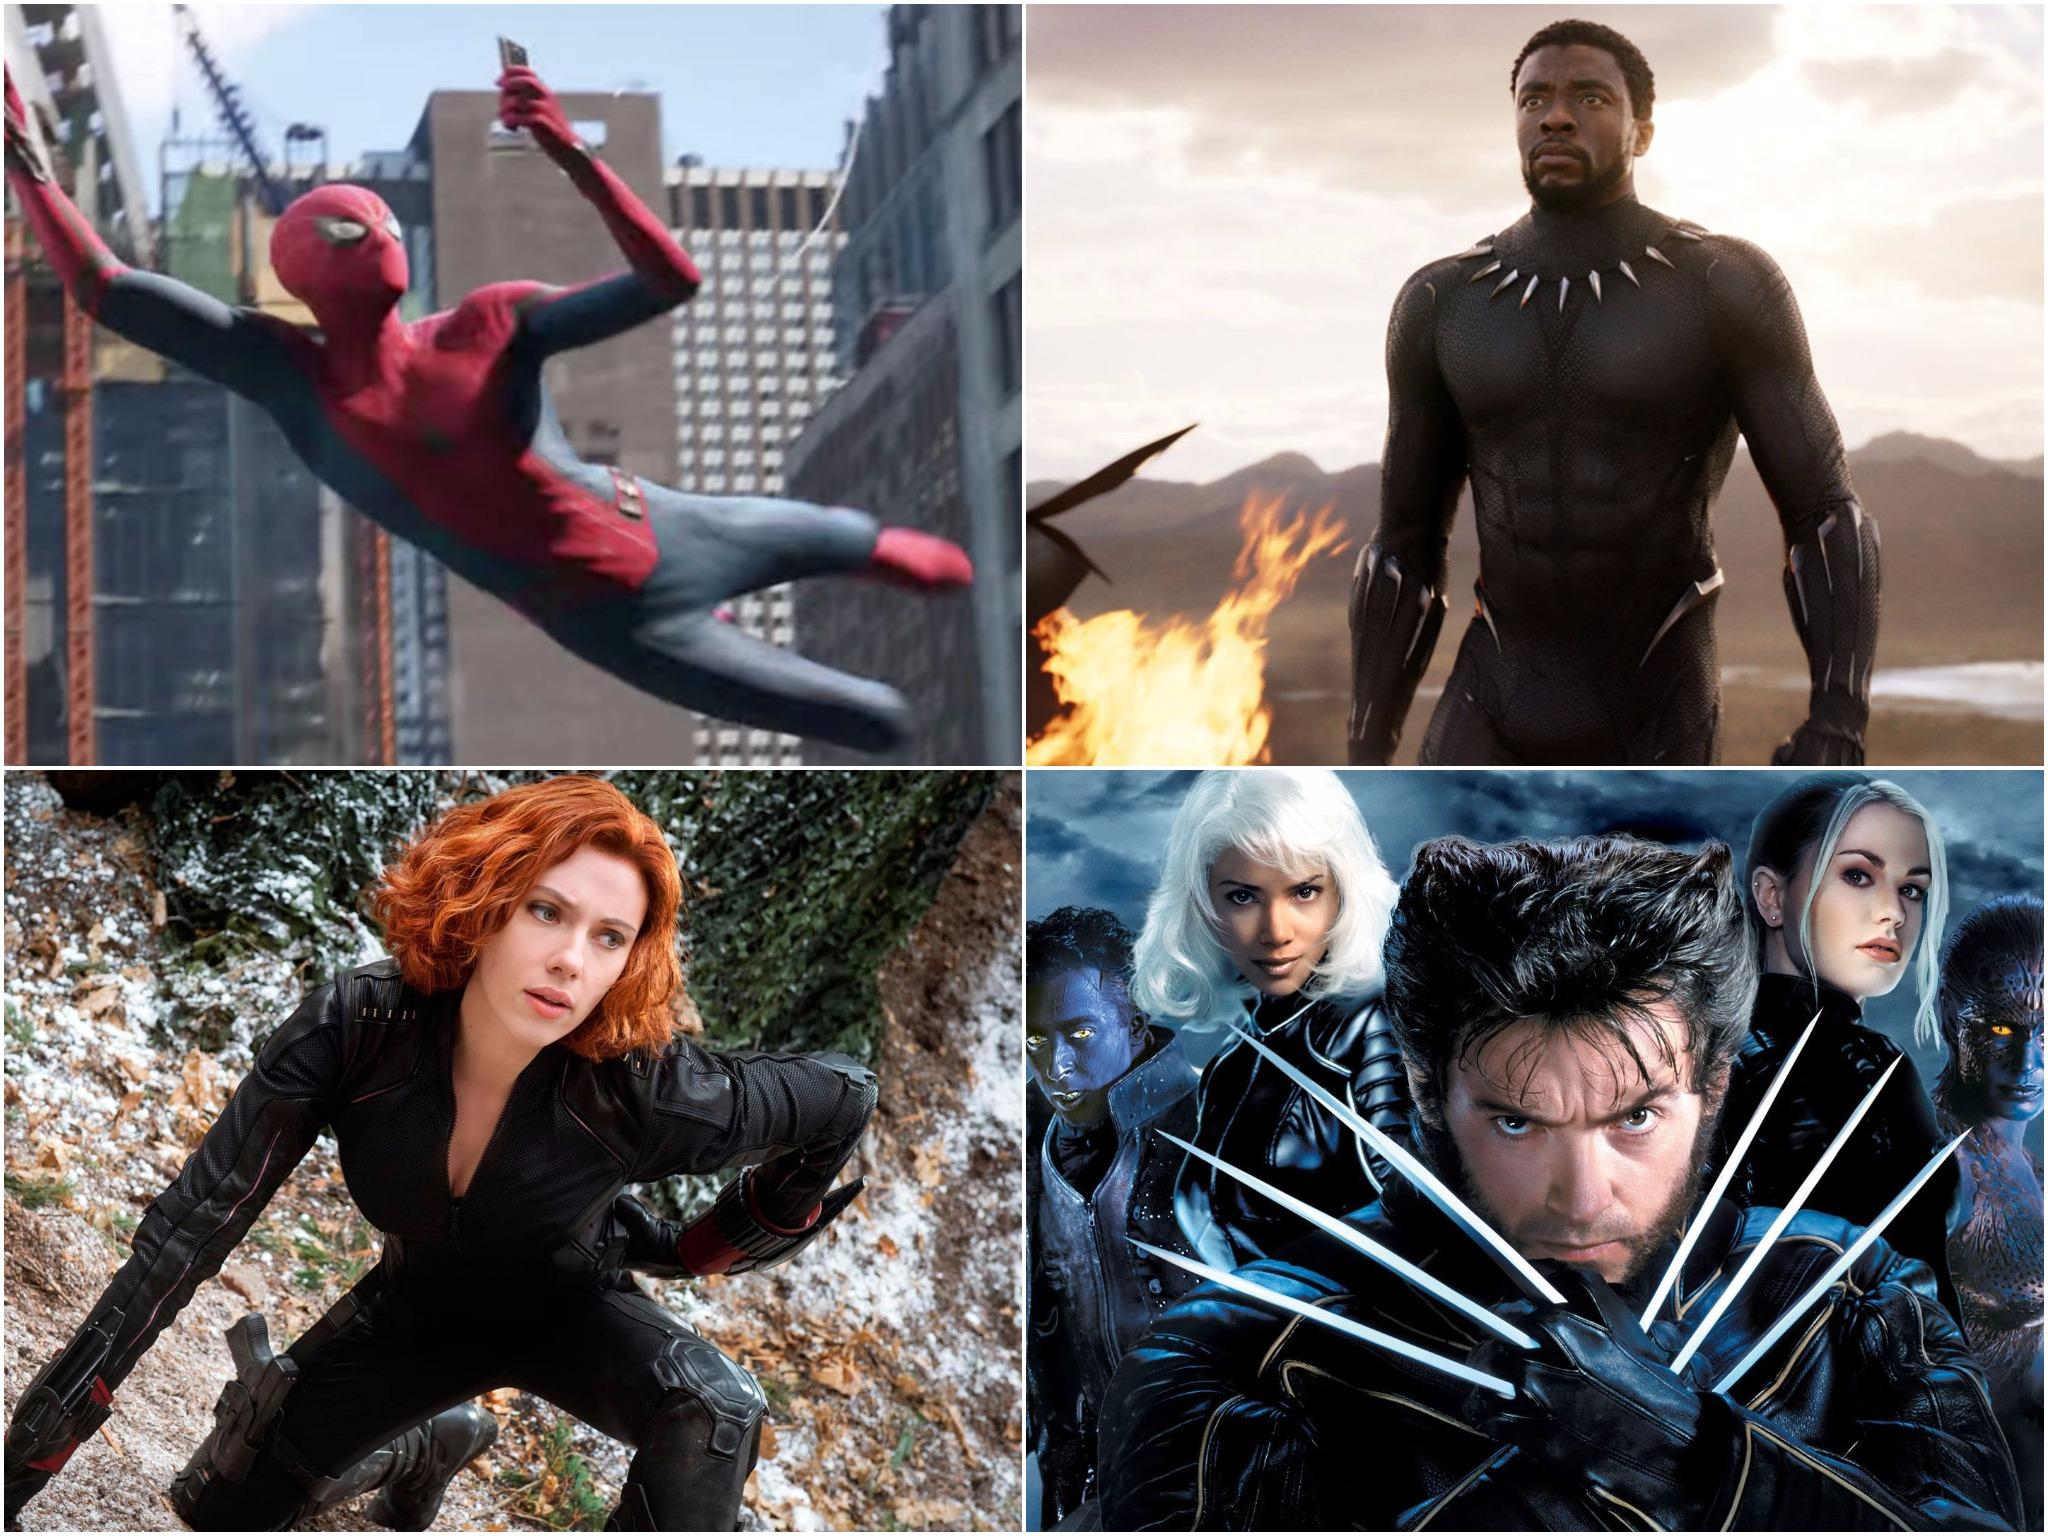 Marvel Phase 4: Every film announced so far and when the X